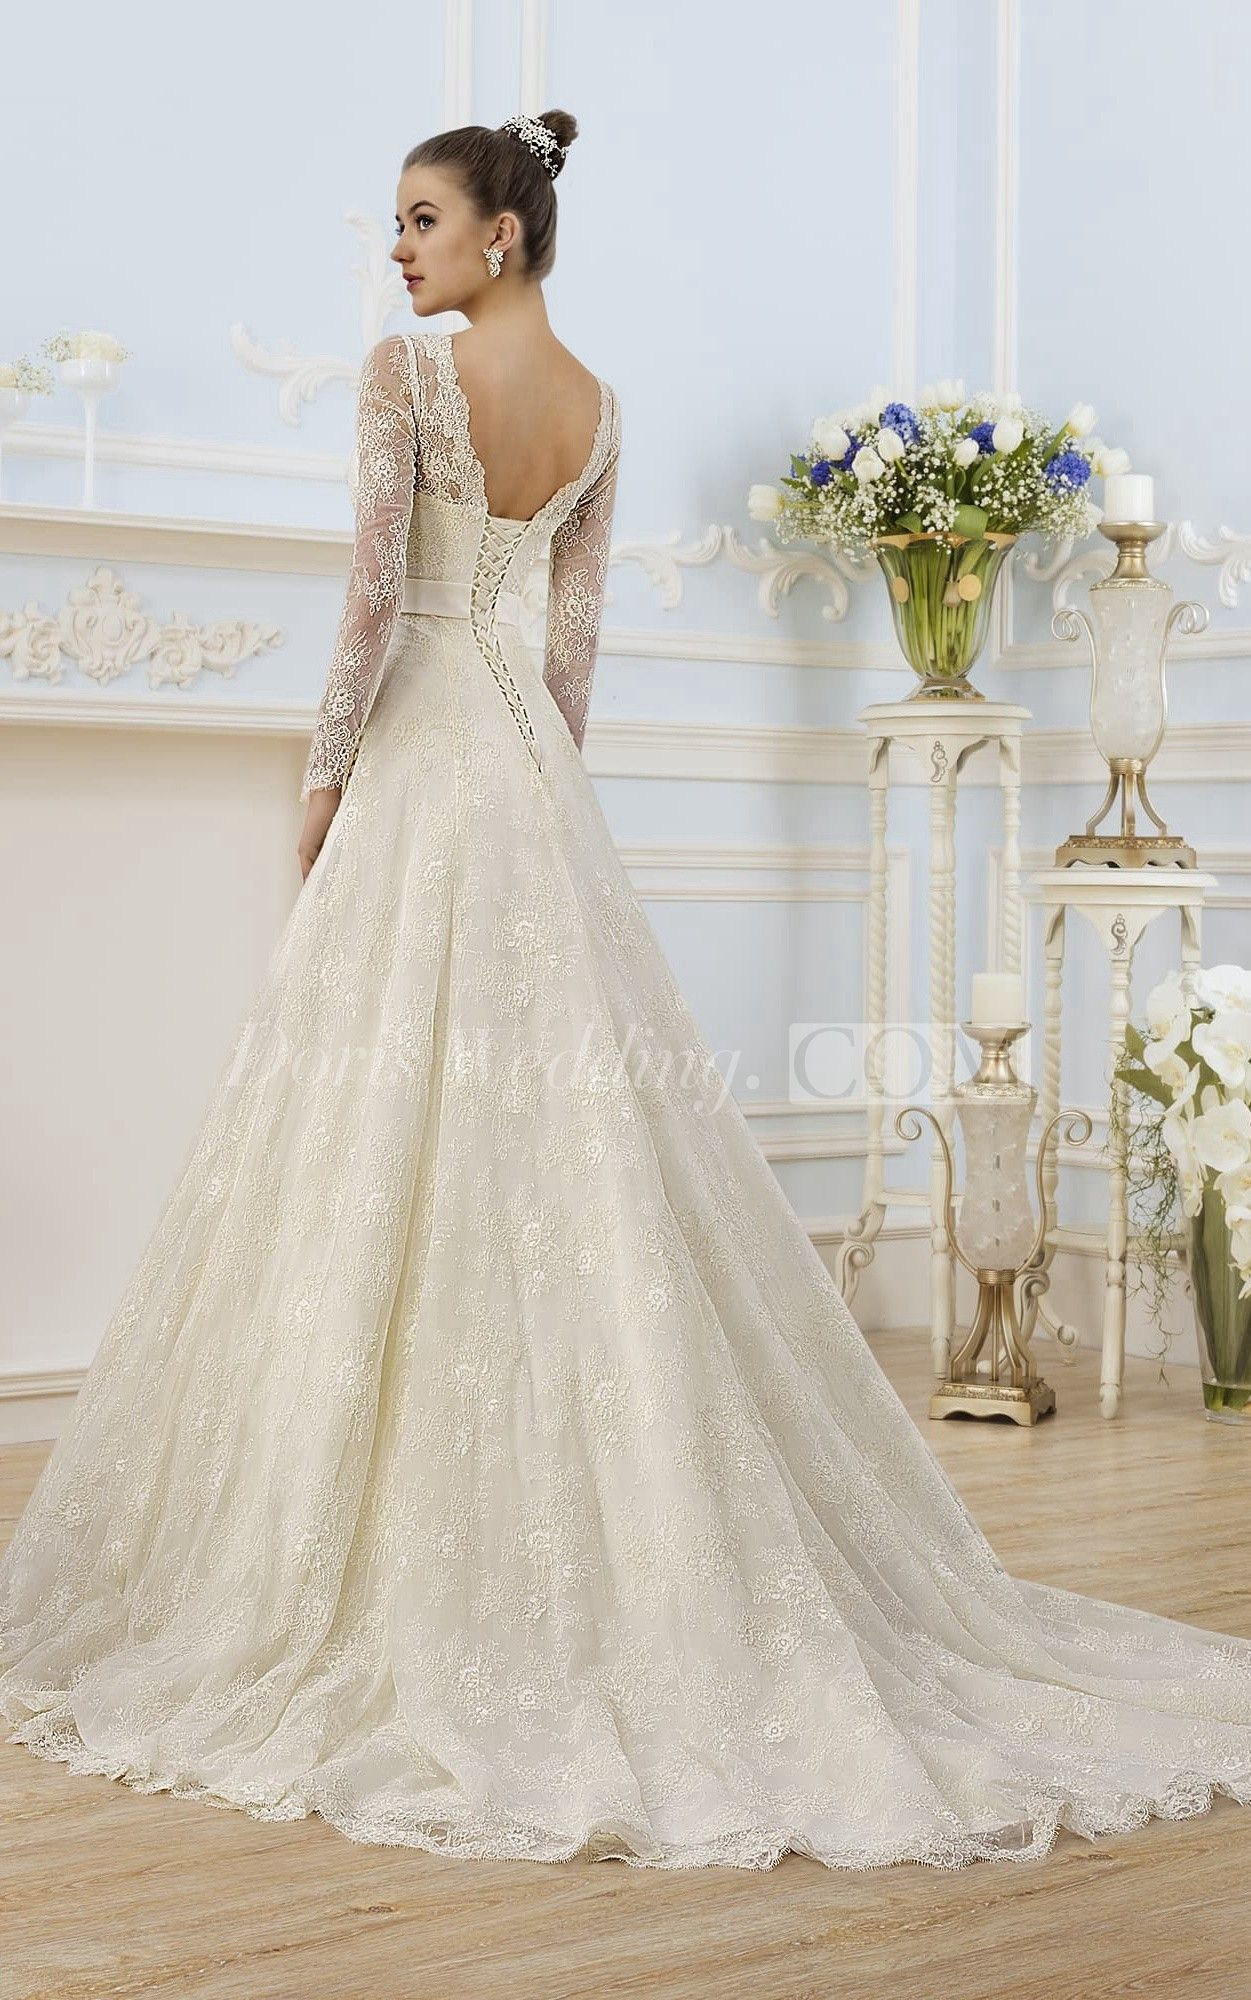 A Line Floor Length V Neck Illusion Sleeve Corset Back Lace Dress With Appliques And Bow Corset Back Wedding Dress Wedding Dresses Corset Wedding Dresses